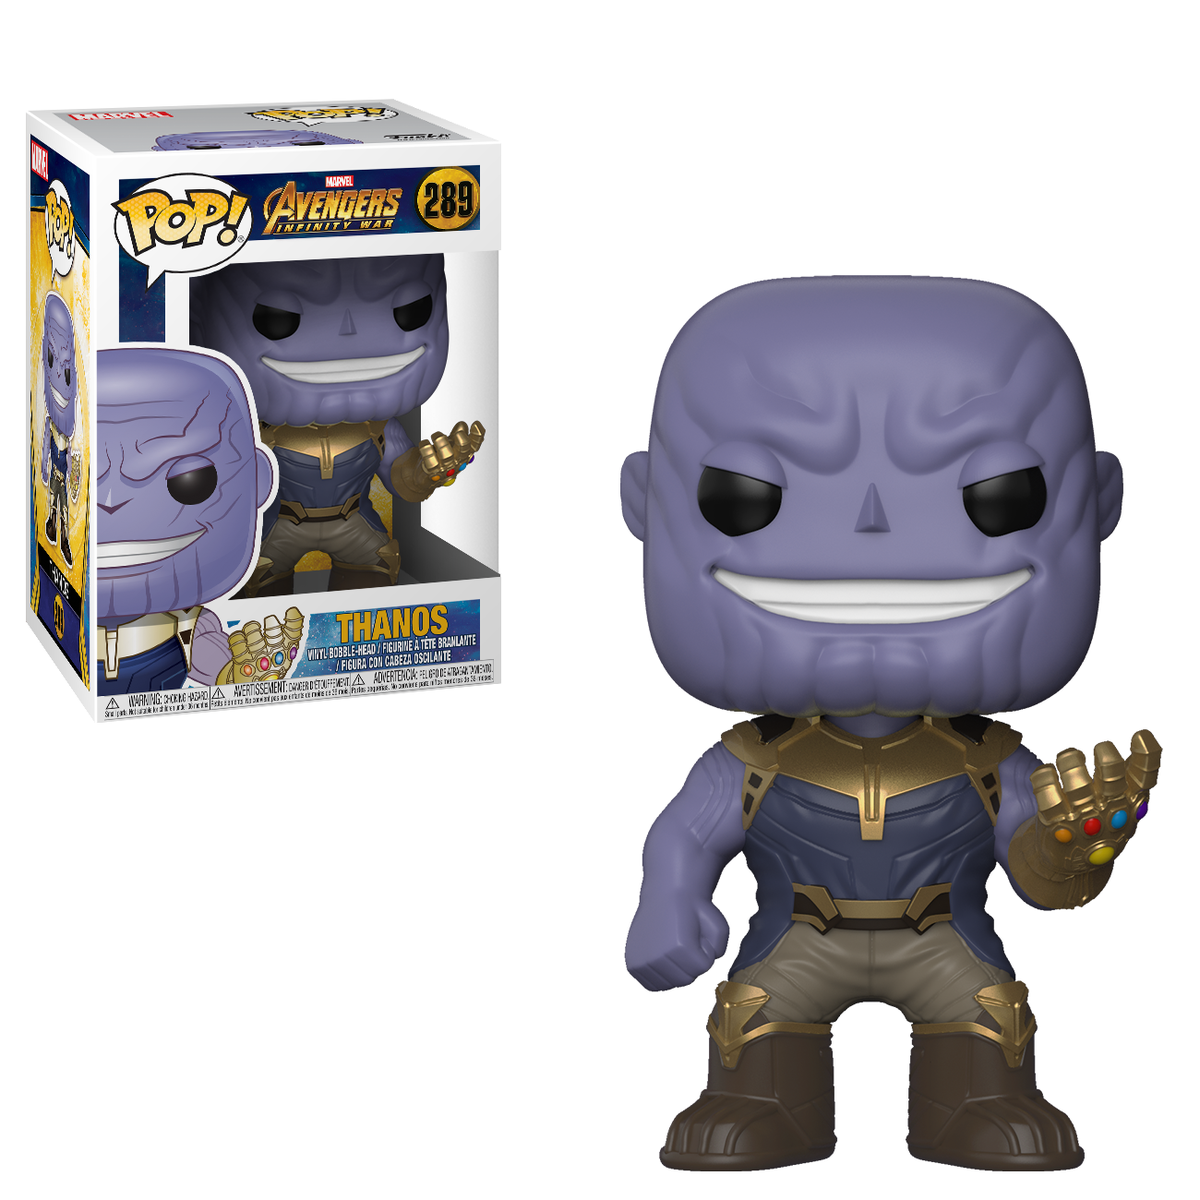 RT & follow @OriginalFunko for the chance to win a Thanos Pop! #FathersDay